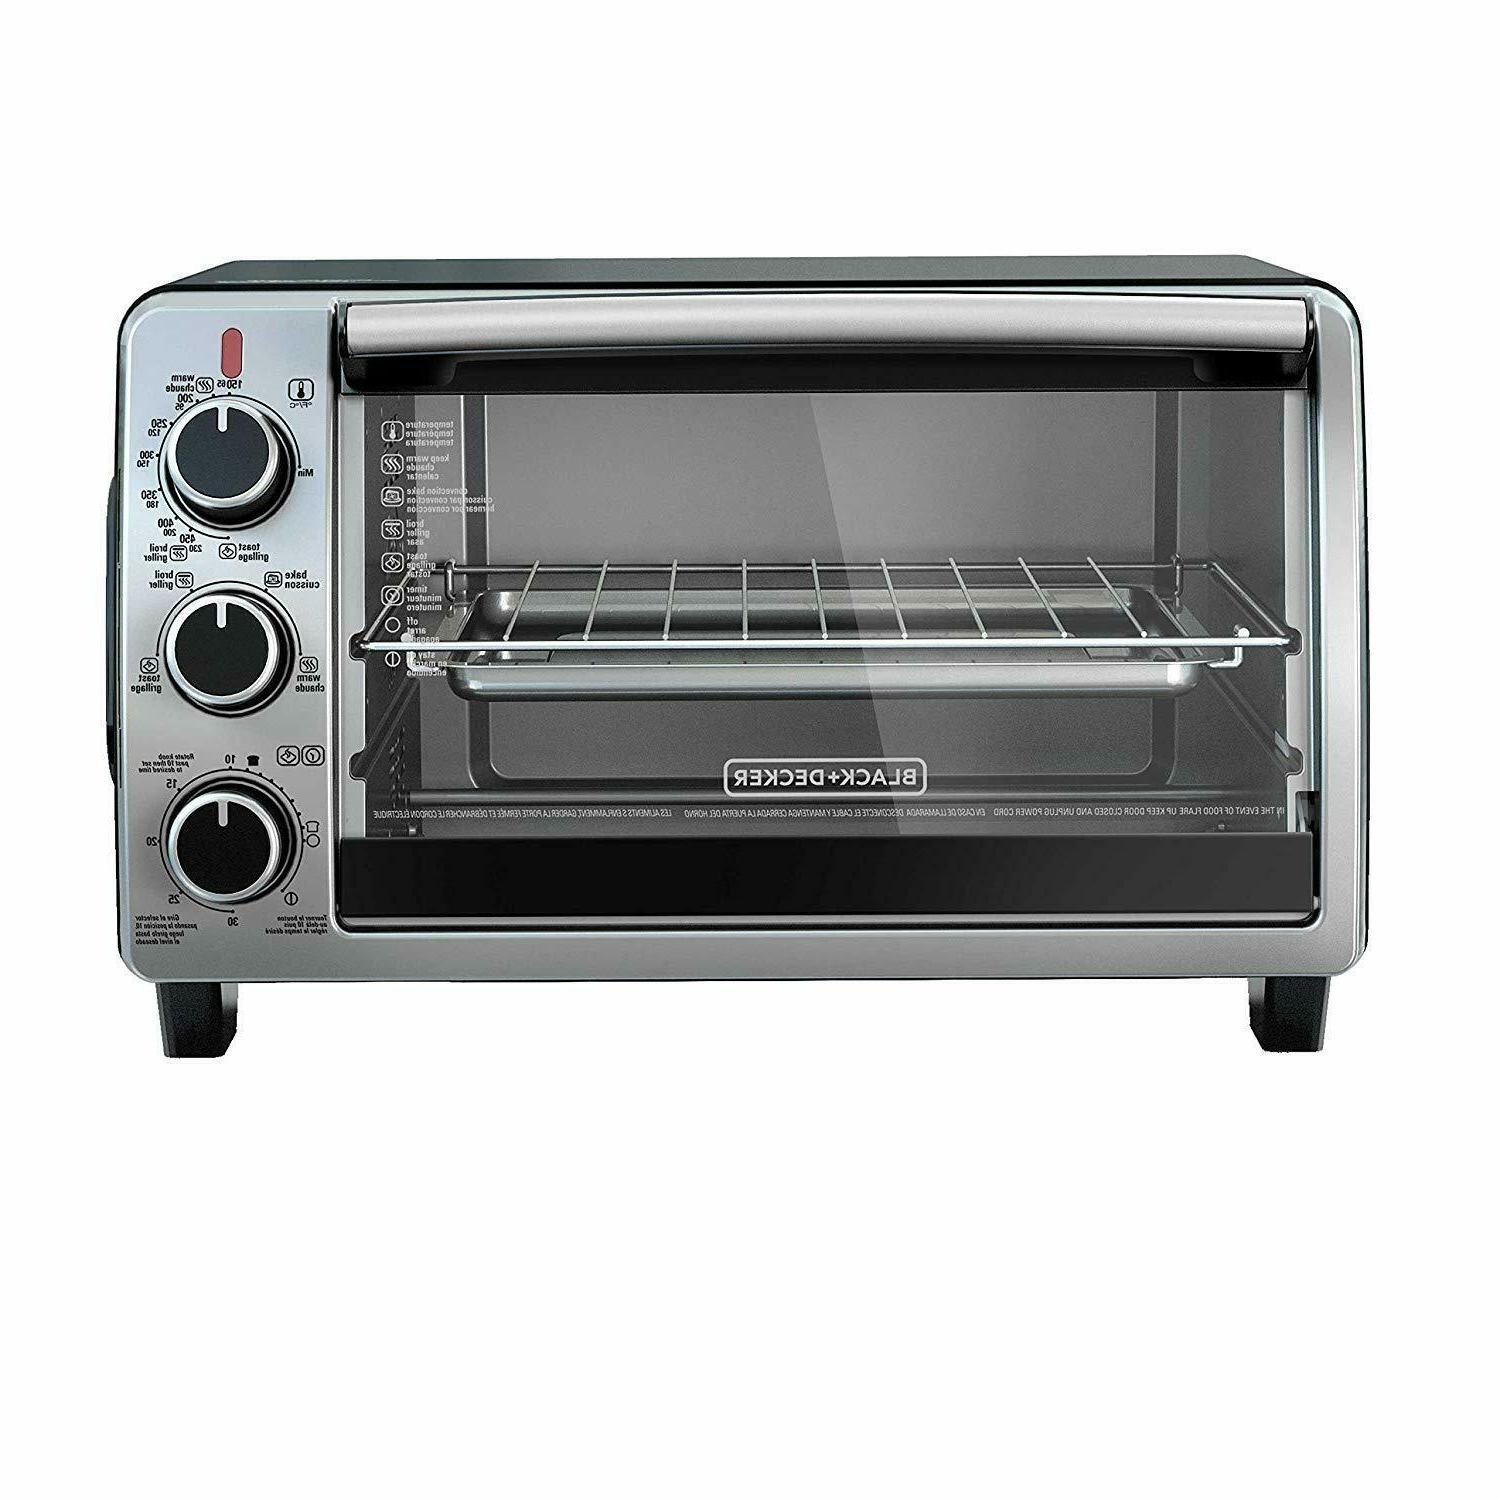 CONVECTION Toaster Stainless Steel Baking Broiling